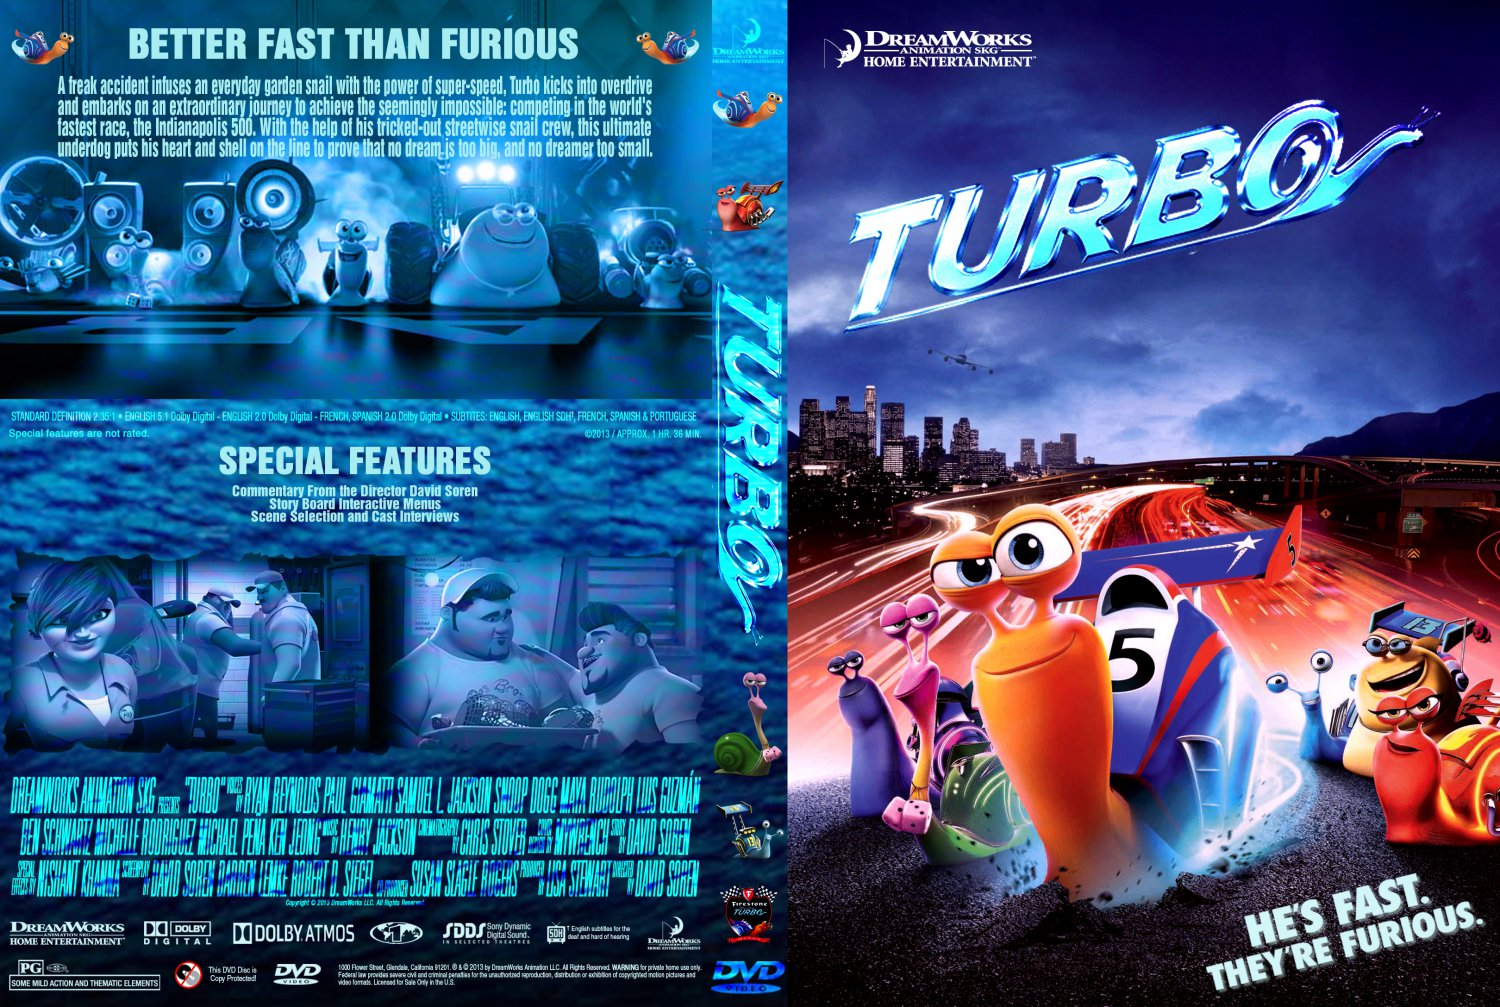 Turbo the movie on dvd - Le pierre new york